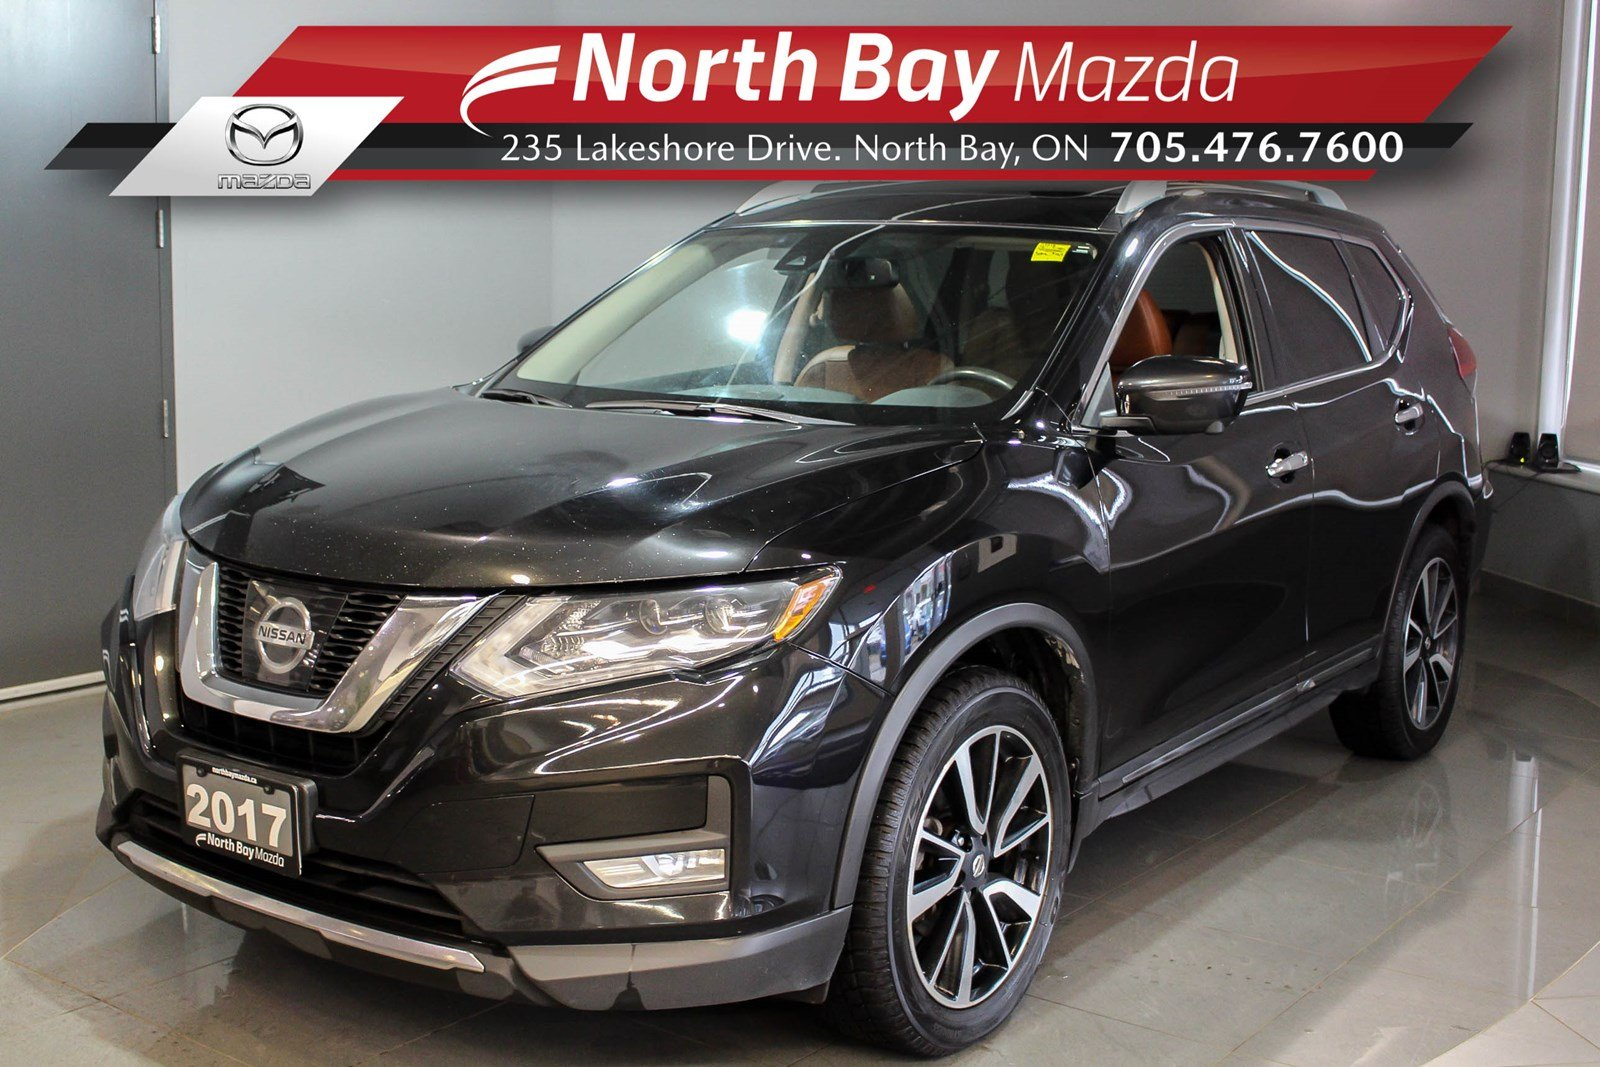 Pre-Owned 2017 Nissan Rogue SL Platinum AWD with Nav, Panoramic Sunroof